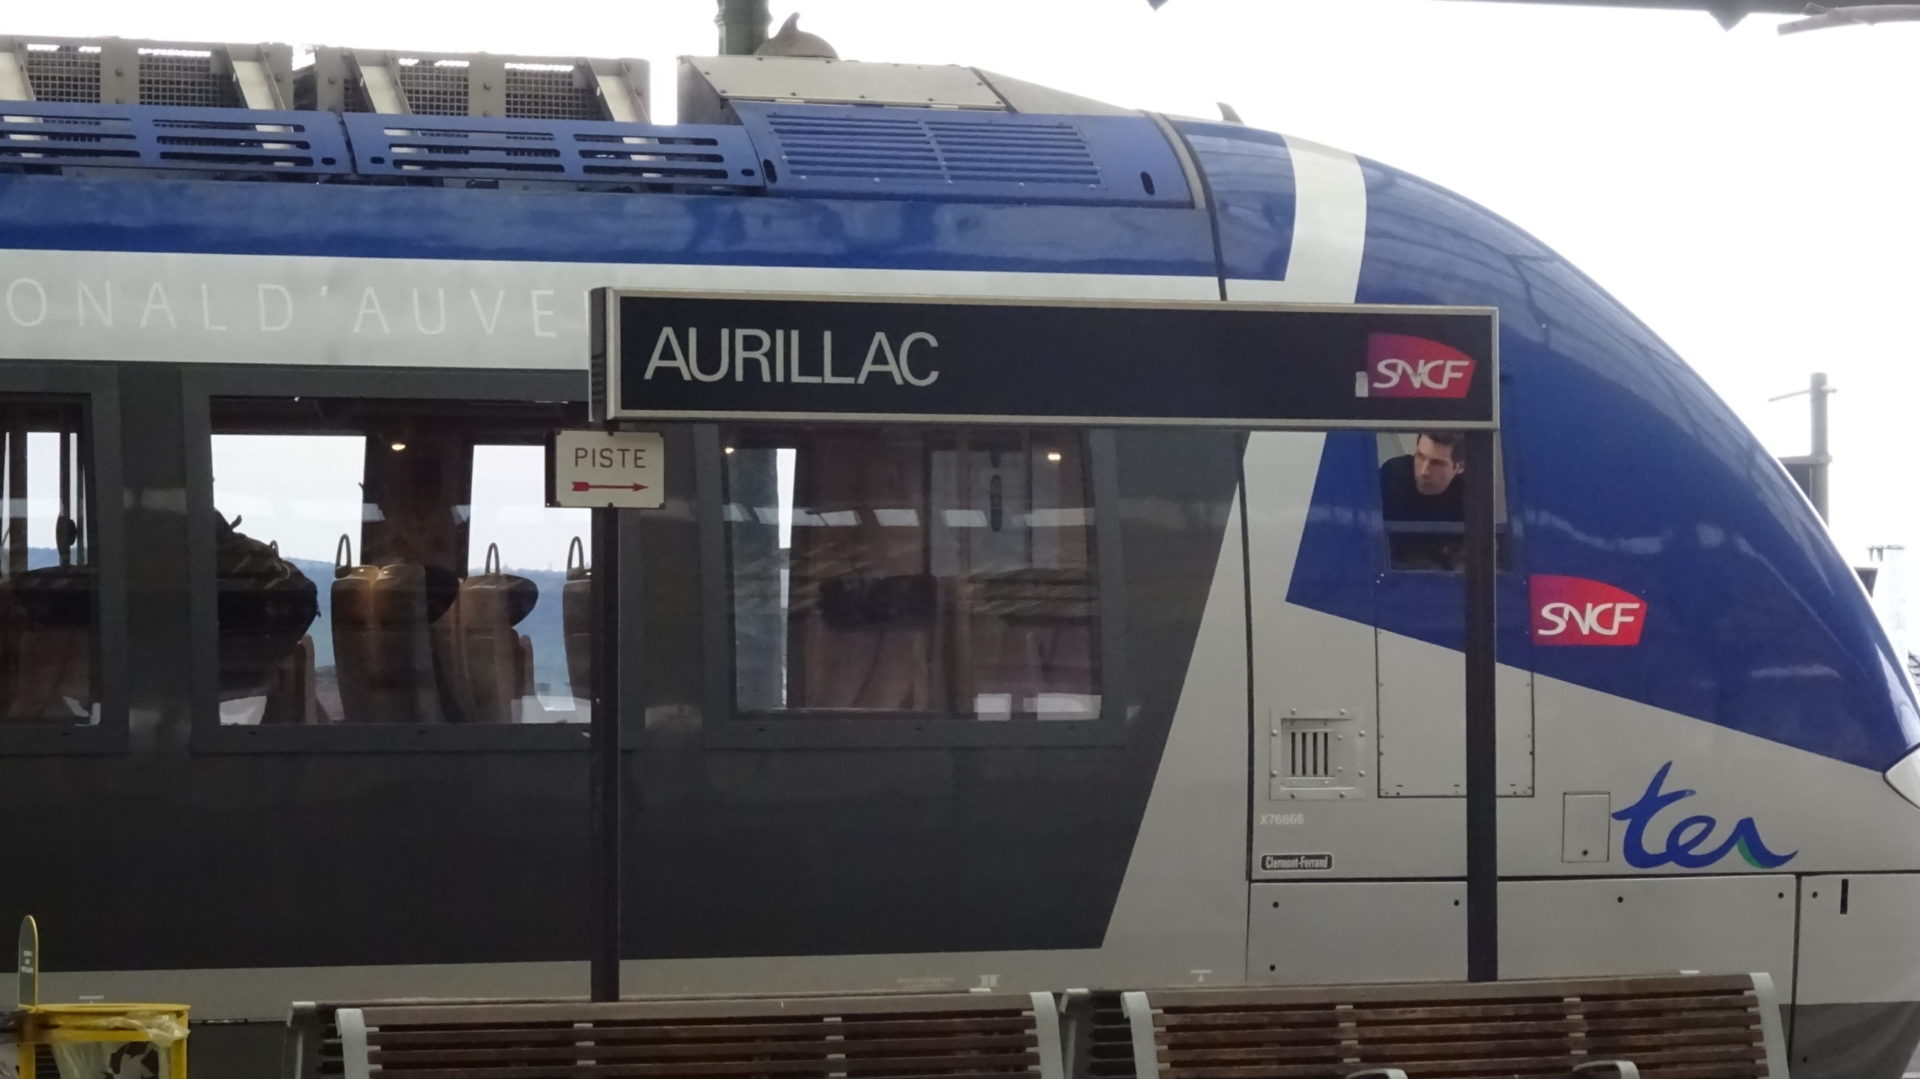 21 avril – Paris-Aurillac : Vitesse & disparités